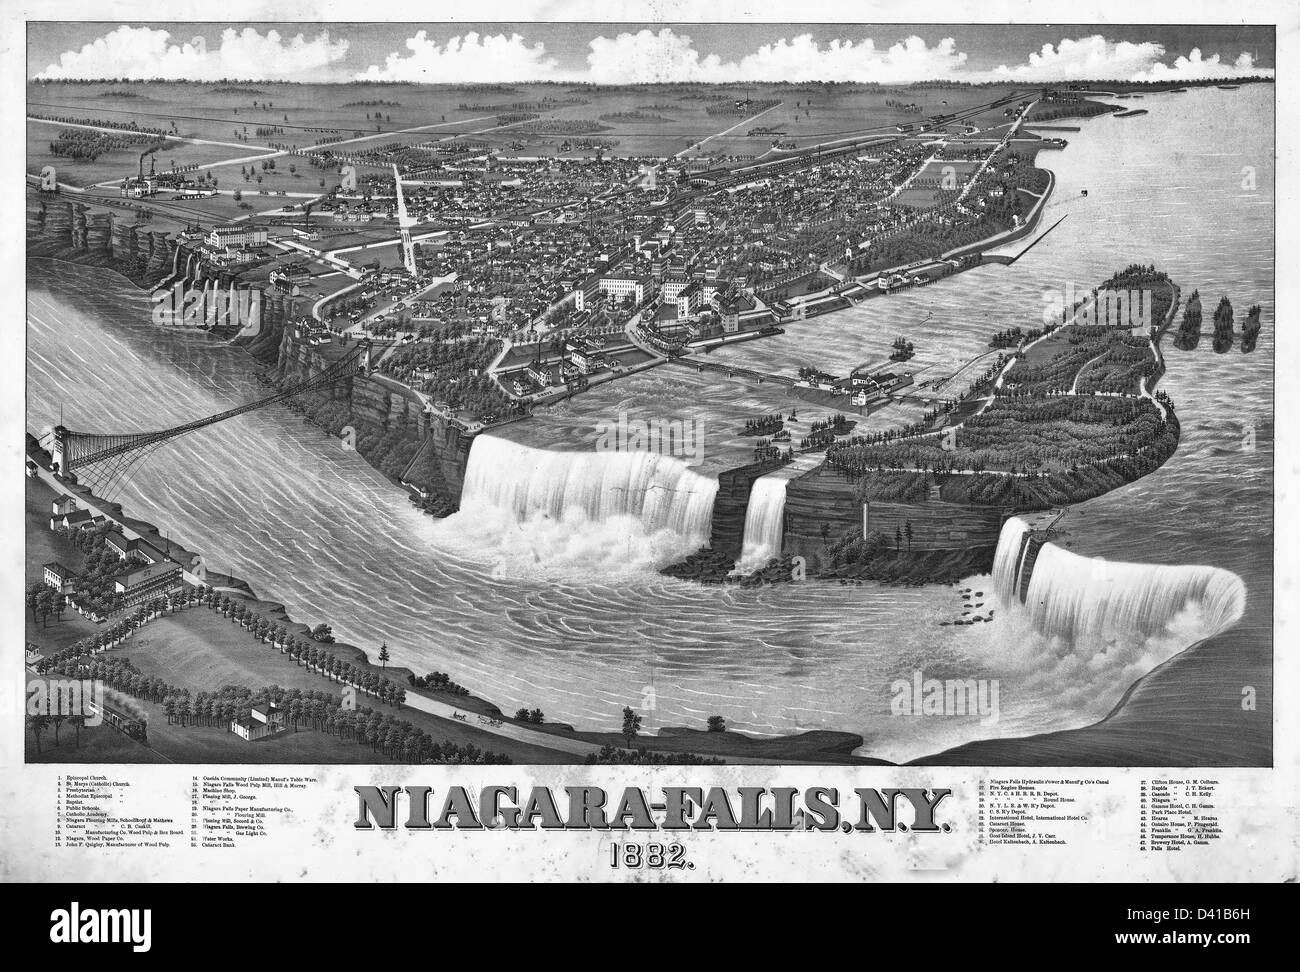 Bird's eye view of Niagara Falls, NY, 1882. Perspective map not drawn to scale. - Stock Image